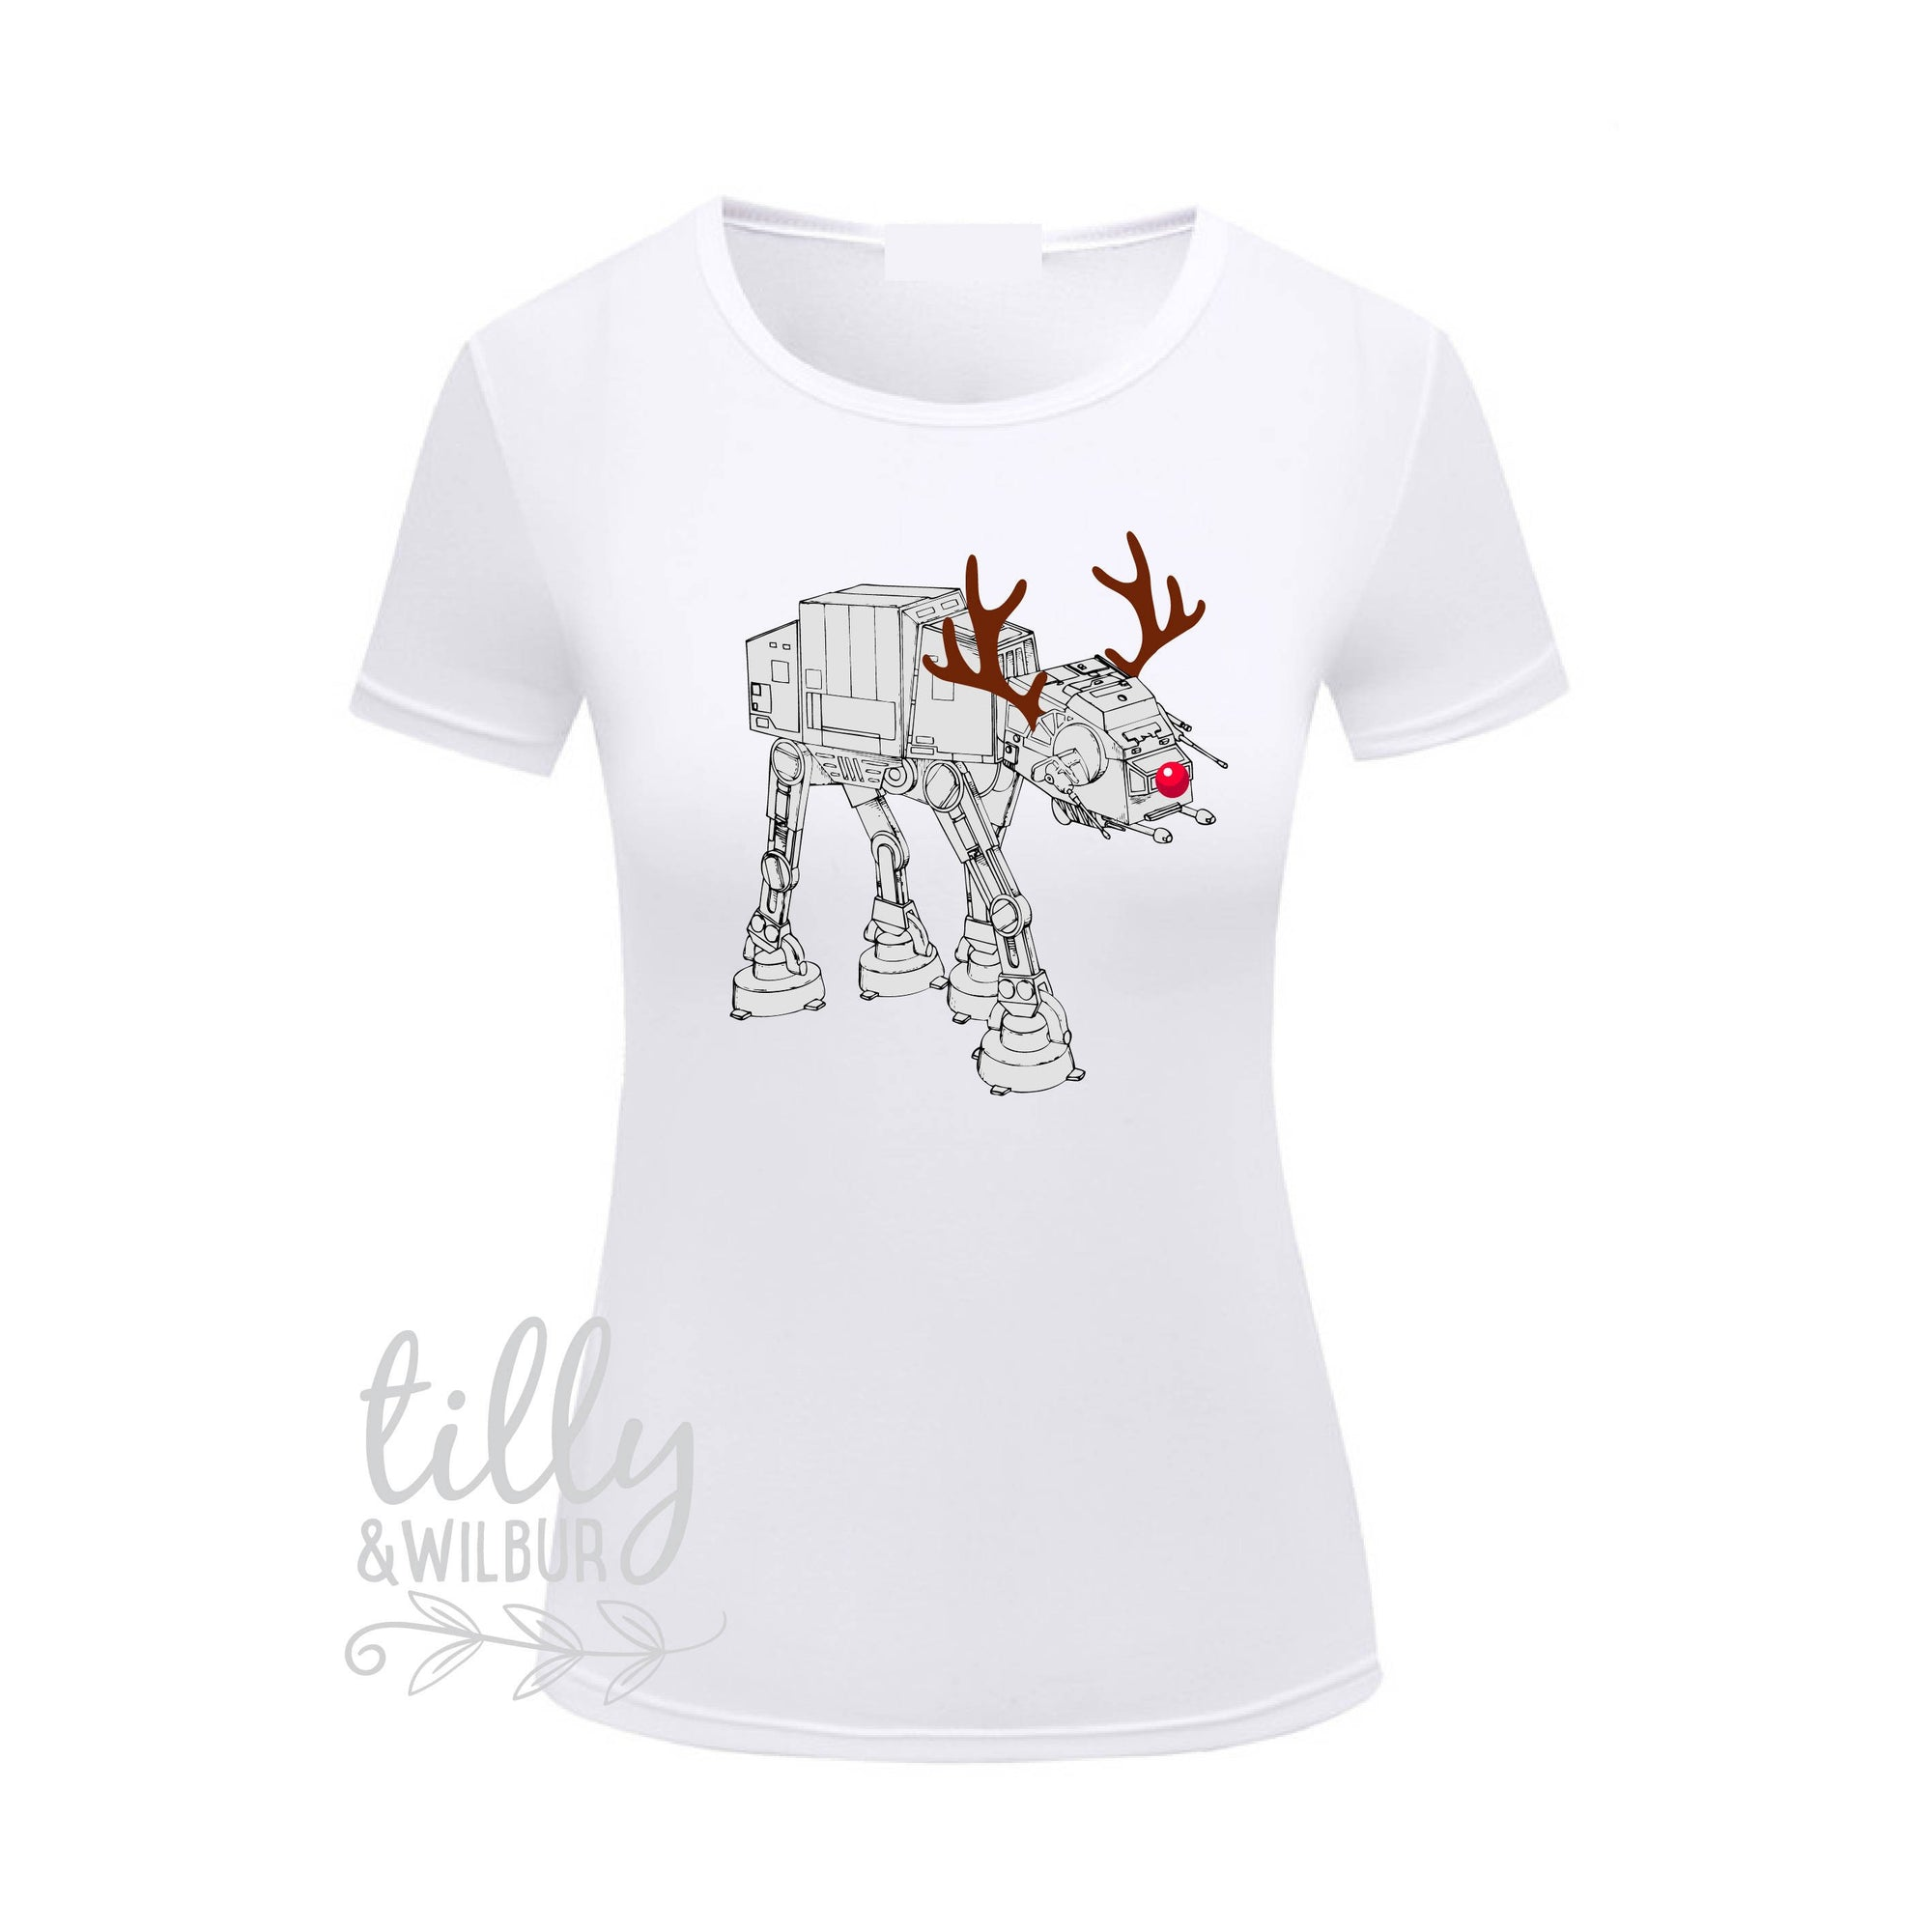 Star Wars AT-AT Walker Christmas Women's T-Shirt, Star Wars Xmas Gift, at-at Walker, Star Wars Gift, Christmas Gift, Women's T-Shirt, At At